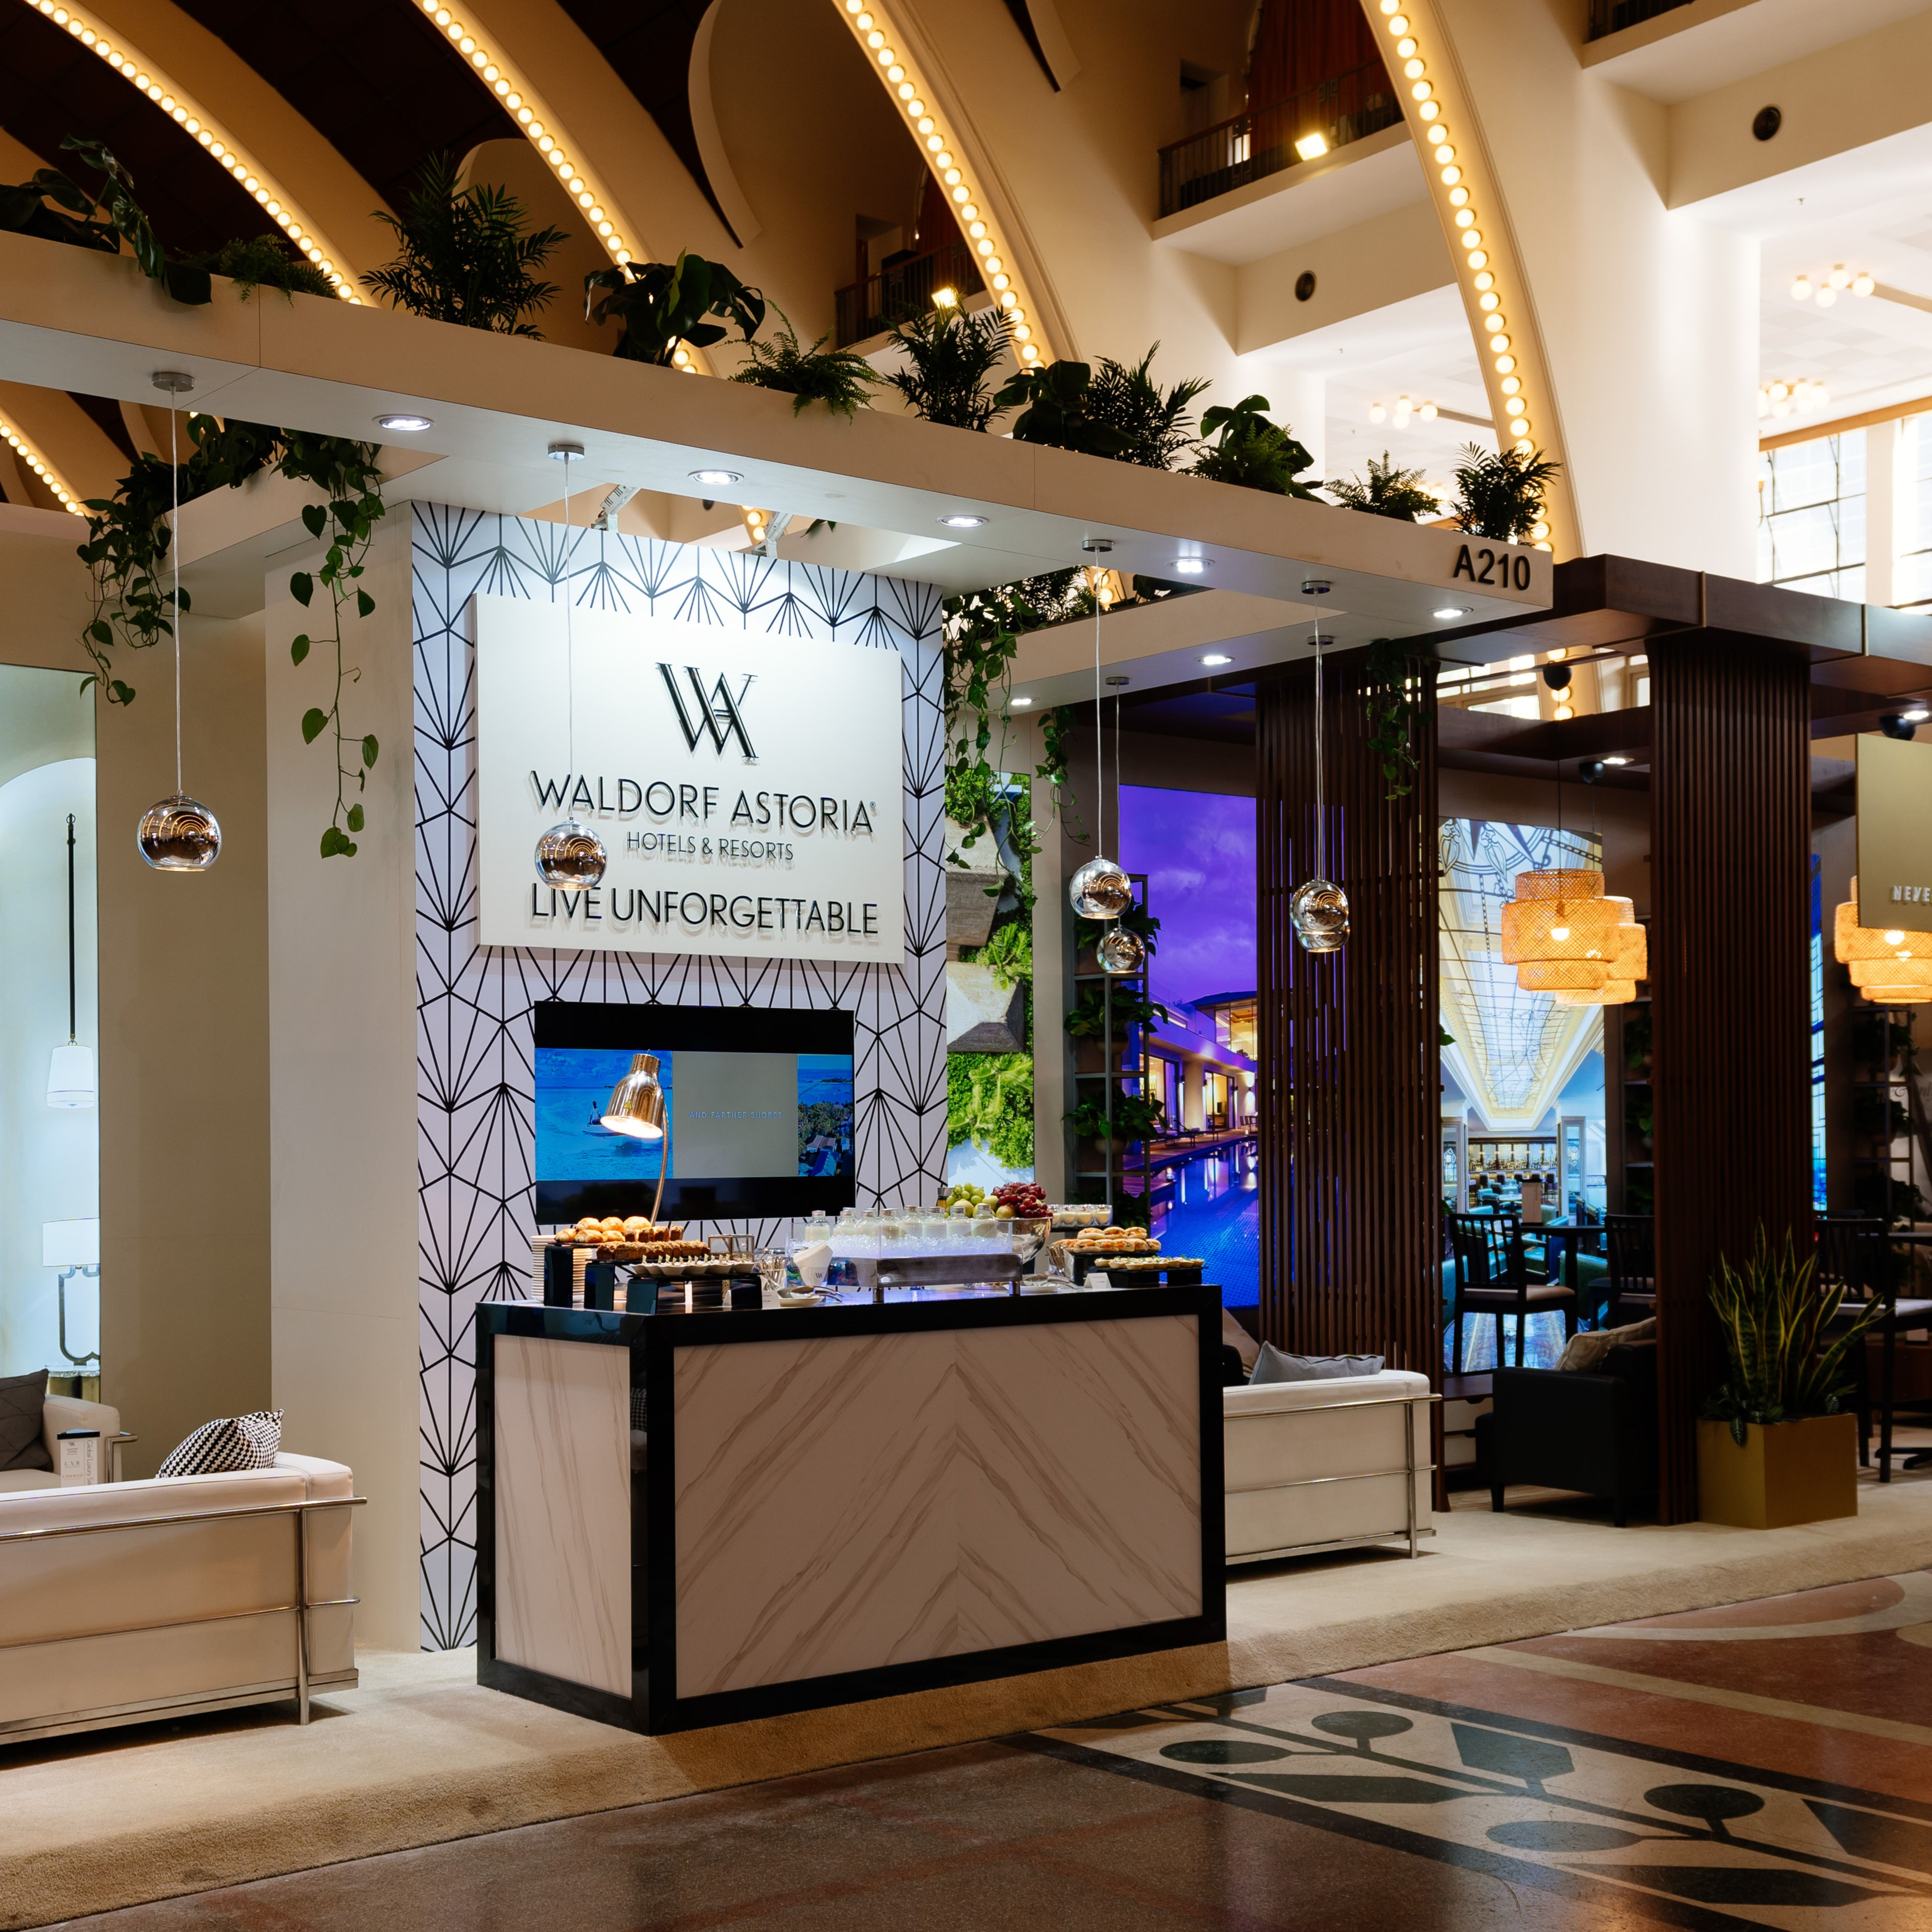 #Tbt to #Hilton at #ILTM in China, 2019. This luxurious stand was designed to promote two different brands, #WaldorfAstoria and #ConradHotels. The attention to detail in the materials and overall finish gave a high-end feel to the whole stand #eventprofs #standdesign #hiltonhotels